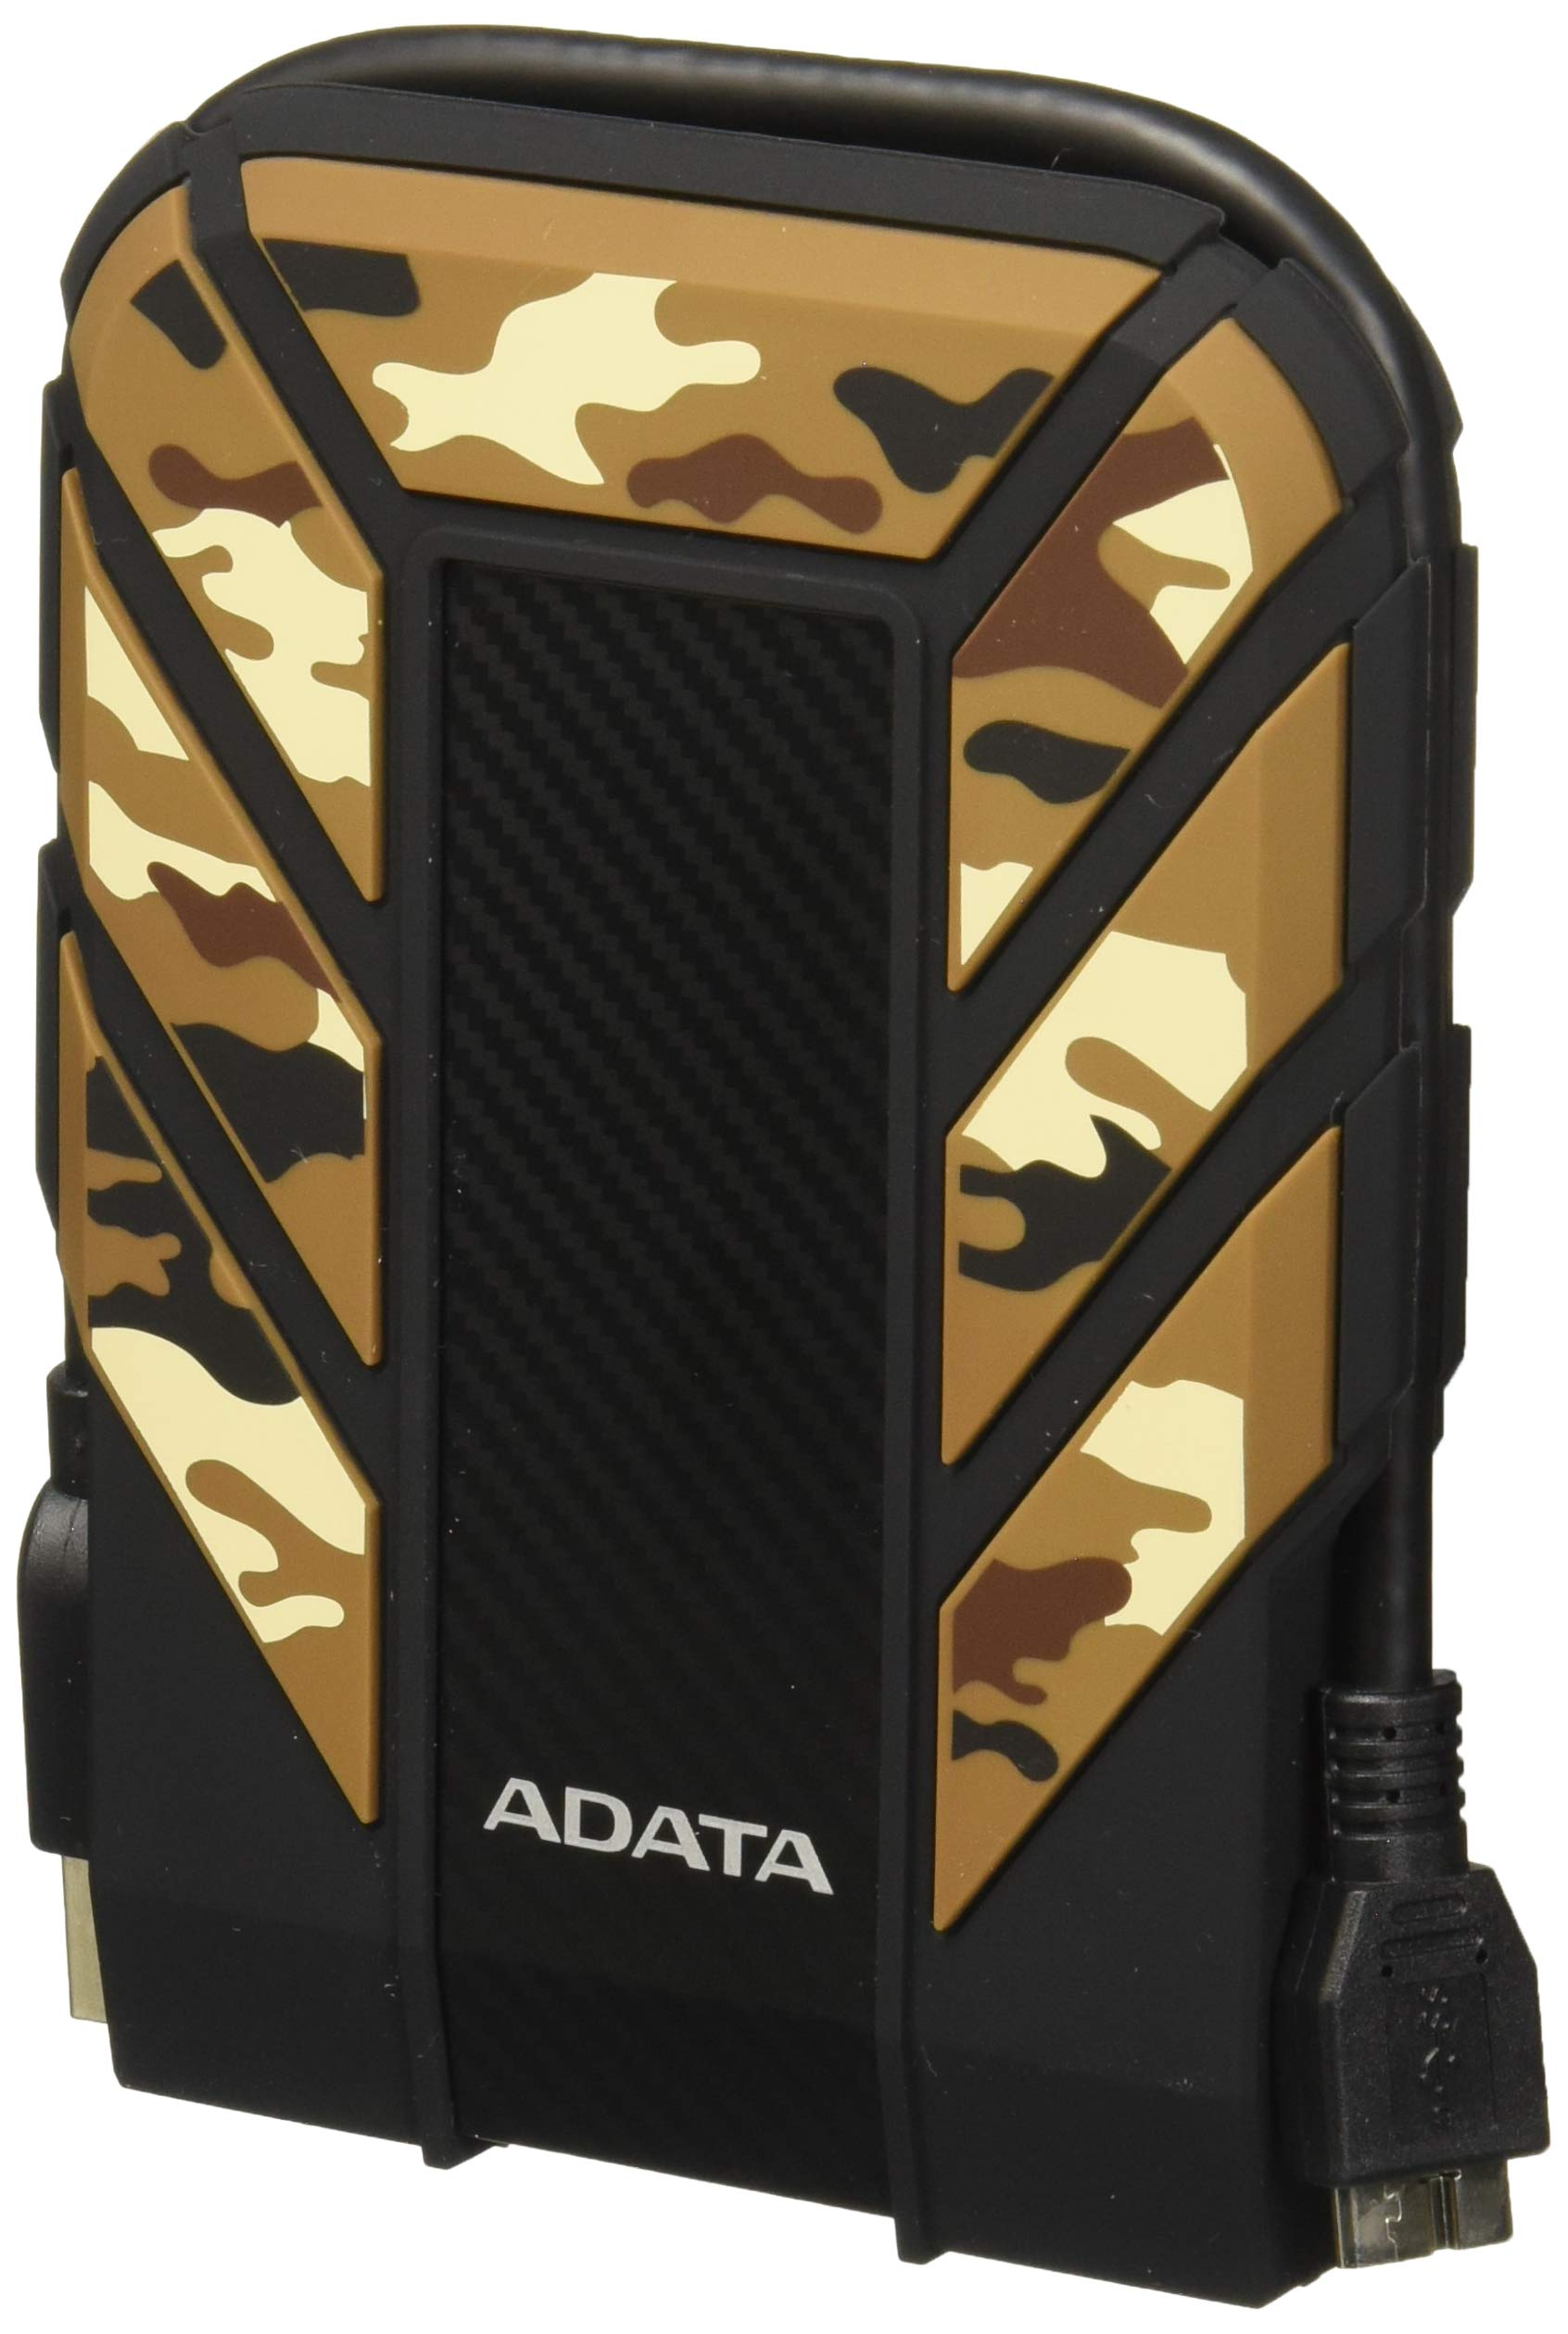 ADATA HD710M Pro 1TB USB 3.2 Rugged Waterproof/Dustproof/Shockproof External Hard Drive AHD710MP-1TU31-CC (Camouflage) by ADATA